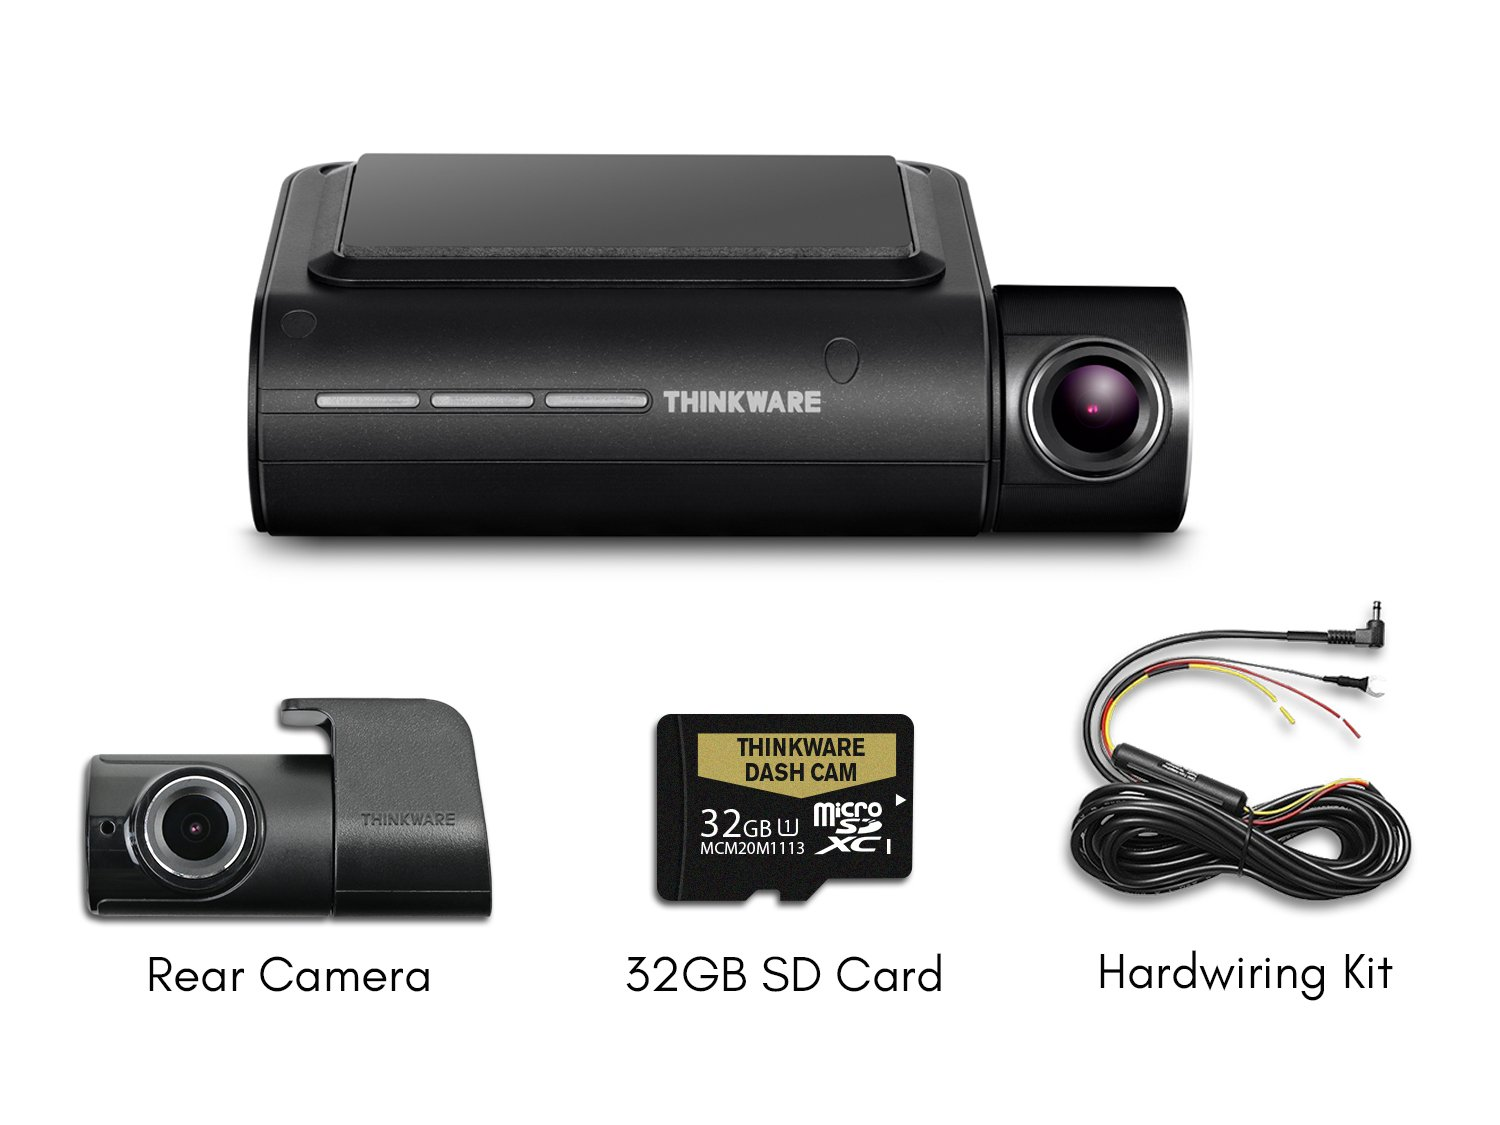 Thinkware F800 PRO 2-Channel Bundle 1080P FHD WiFi Rearview Camera 32GB SD Card and Hardwiring Kit Included